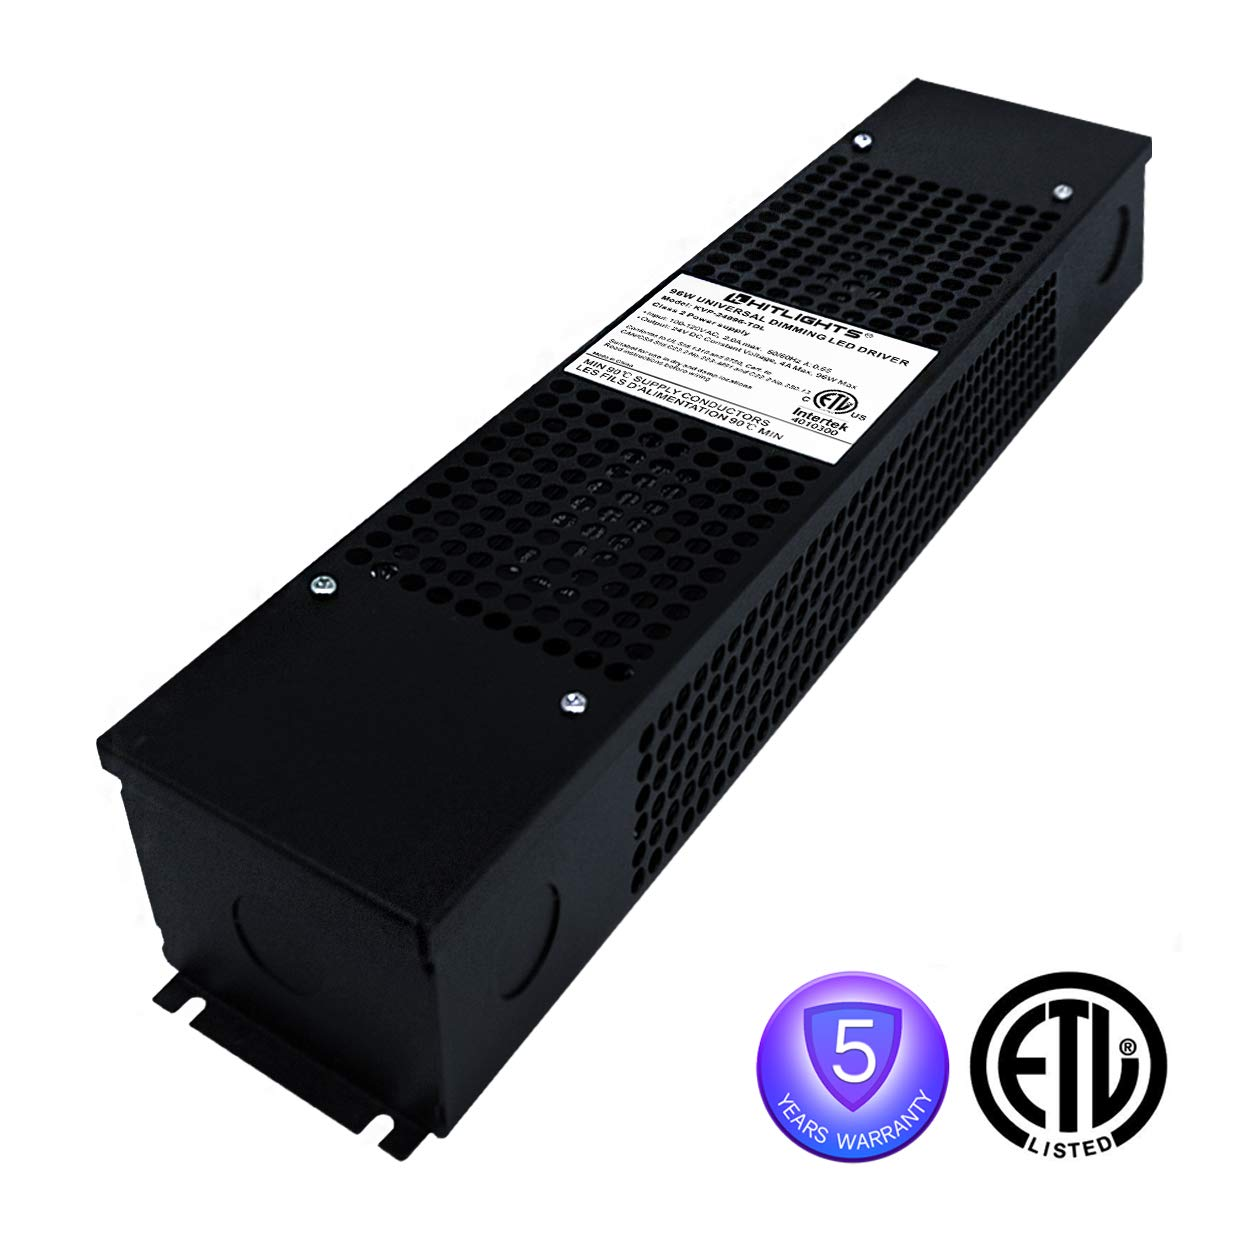 HitLights 96W(4A) LED Dimmable Driver, 100-130VAC to Constant 24V DC Lighting Transformer Compatible with Forward Phase,Magnetic Low Voltage,Triac Dimmer (with Junction Box & Knockouts)